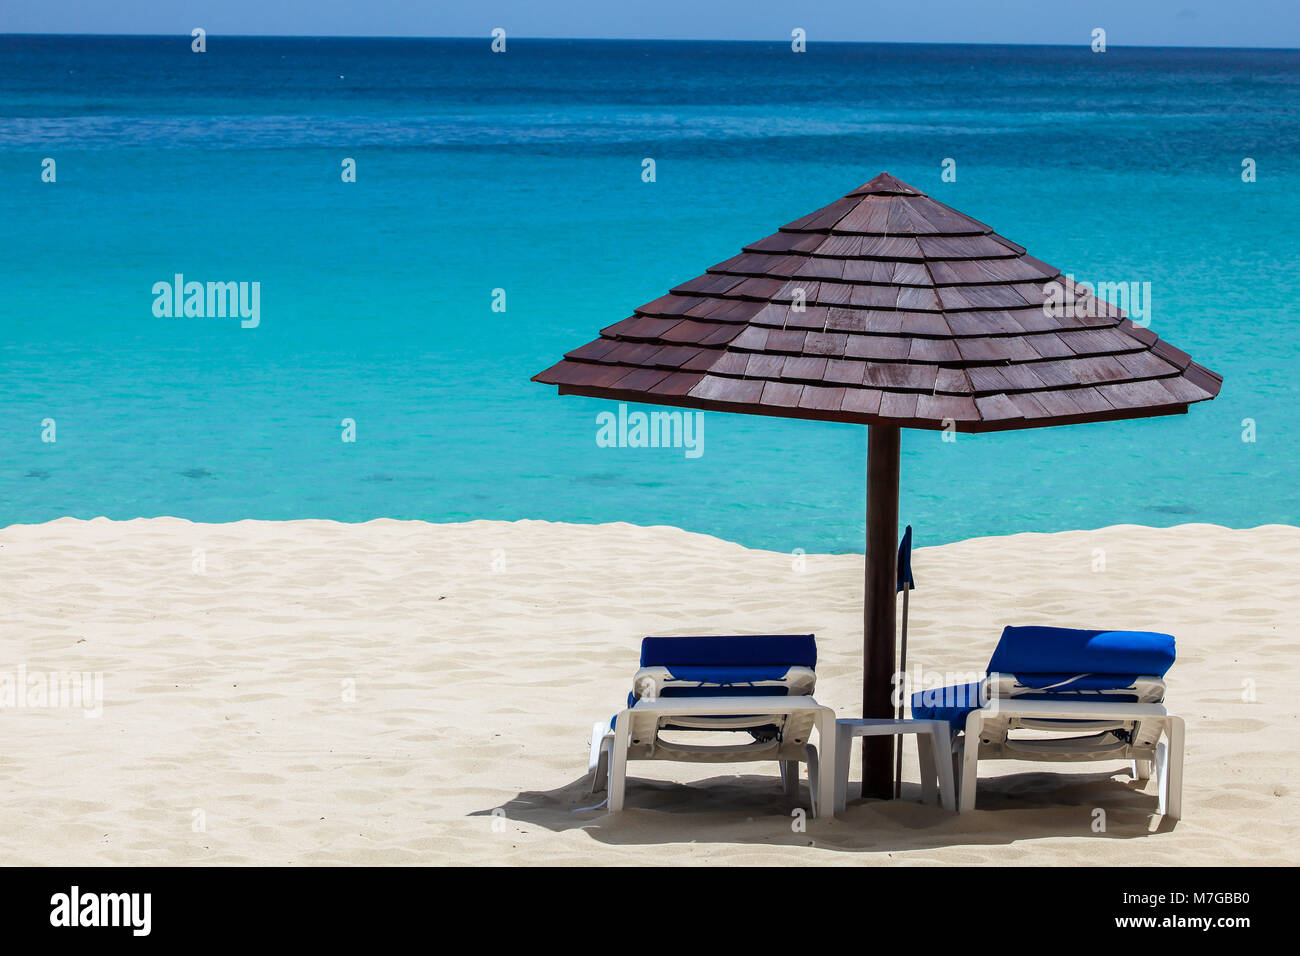 Paradise beach view with ocean - Stock Image